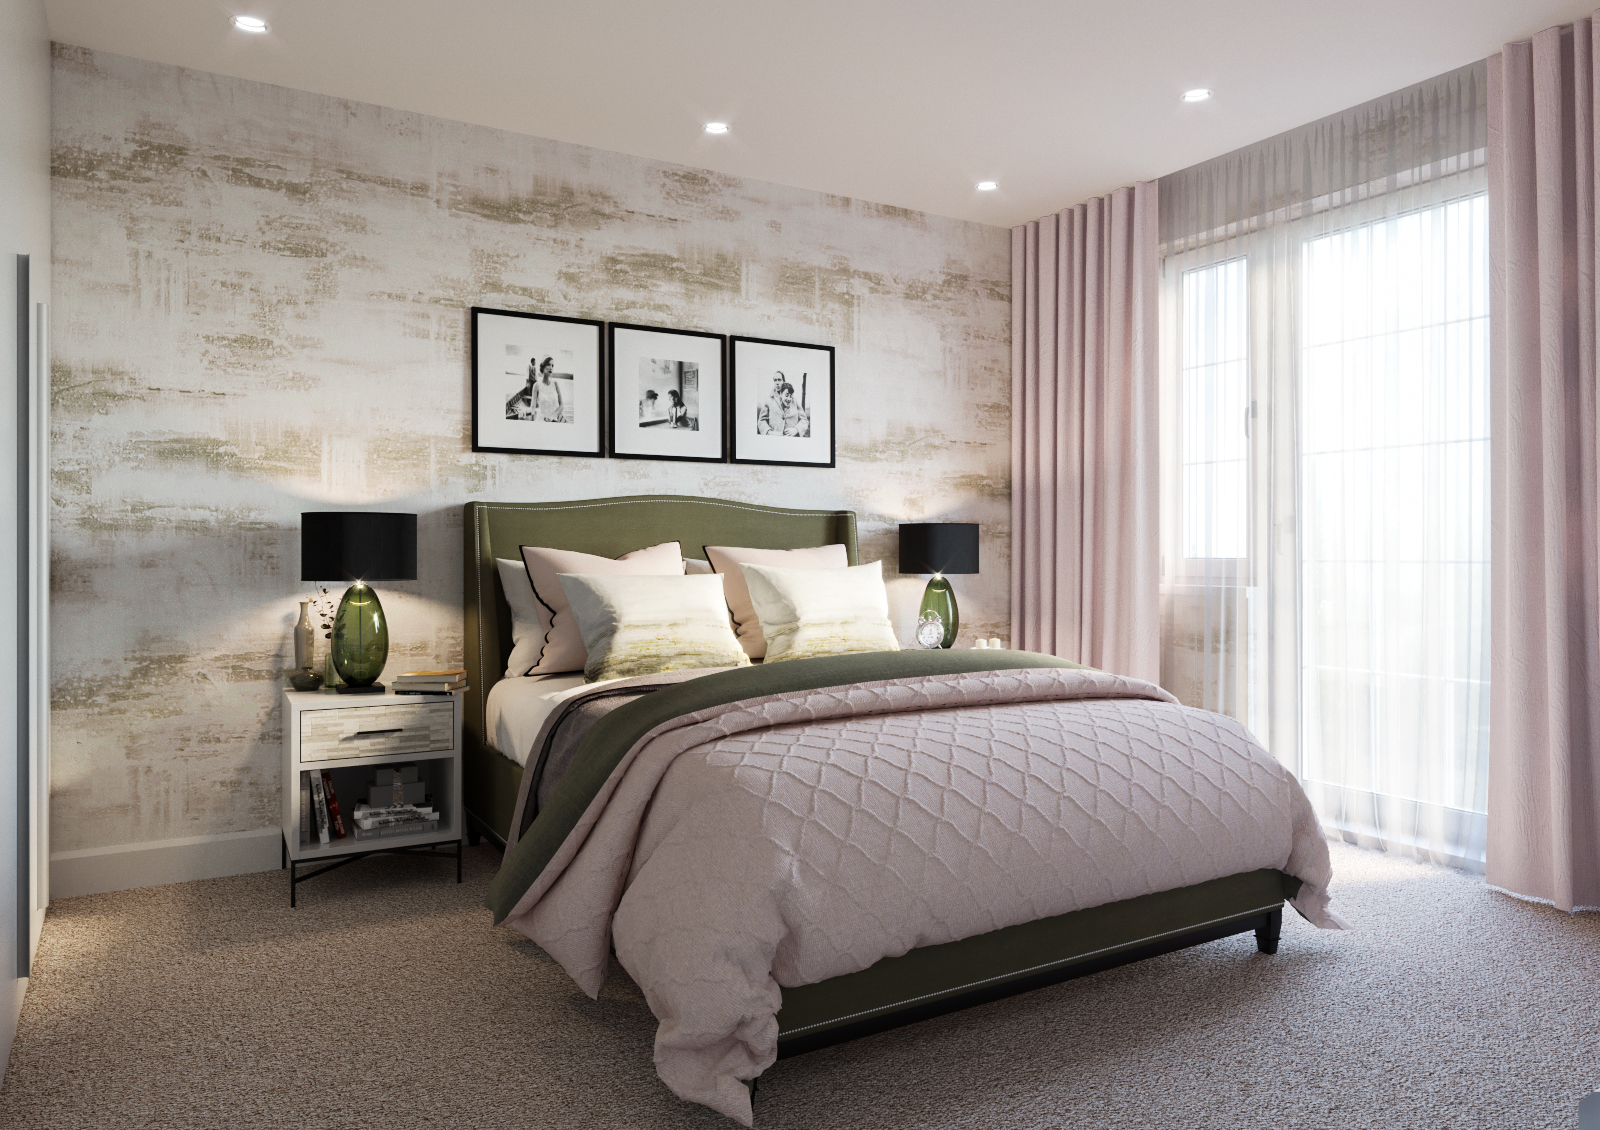 Luxury Bedroom CGI